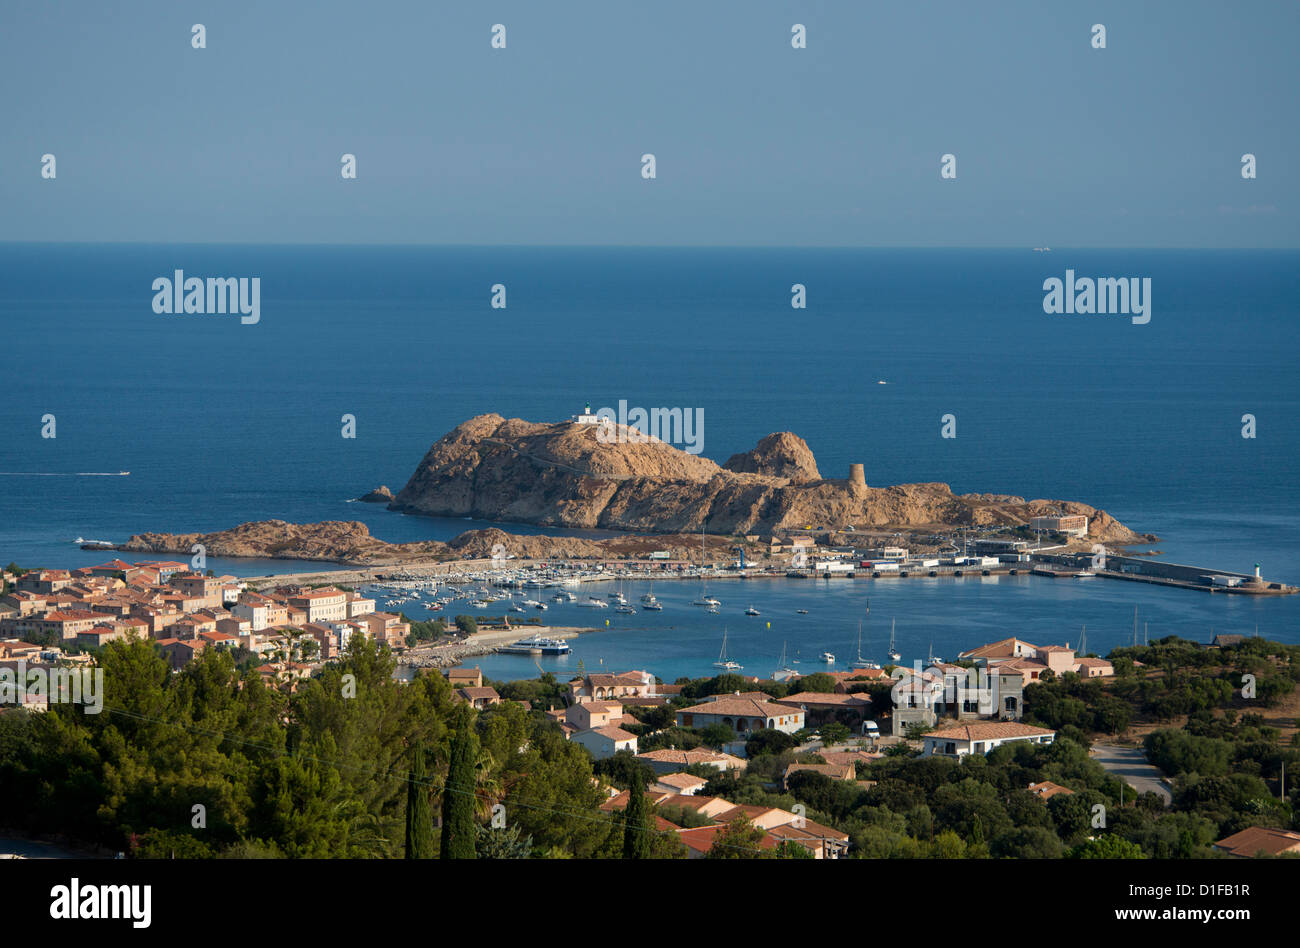 An aerial view of the town of L'Ile Rousse in the Haute-Balagne region of Corsica, France, Mediterranean, Europe Stock Photo